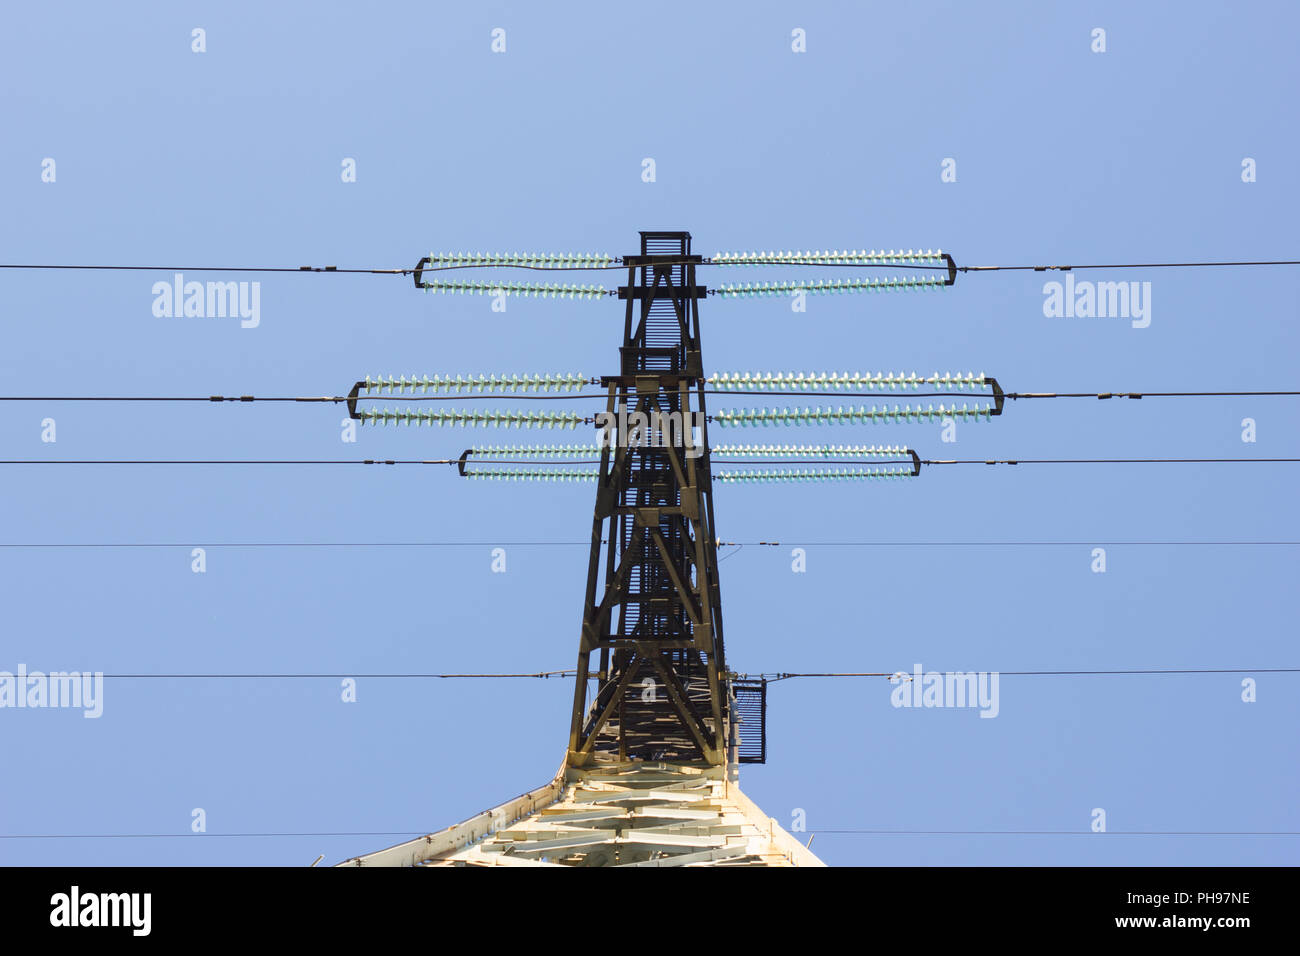 Electrical Insulator Stock Photos & Electrical Insulator Stock ...